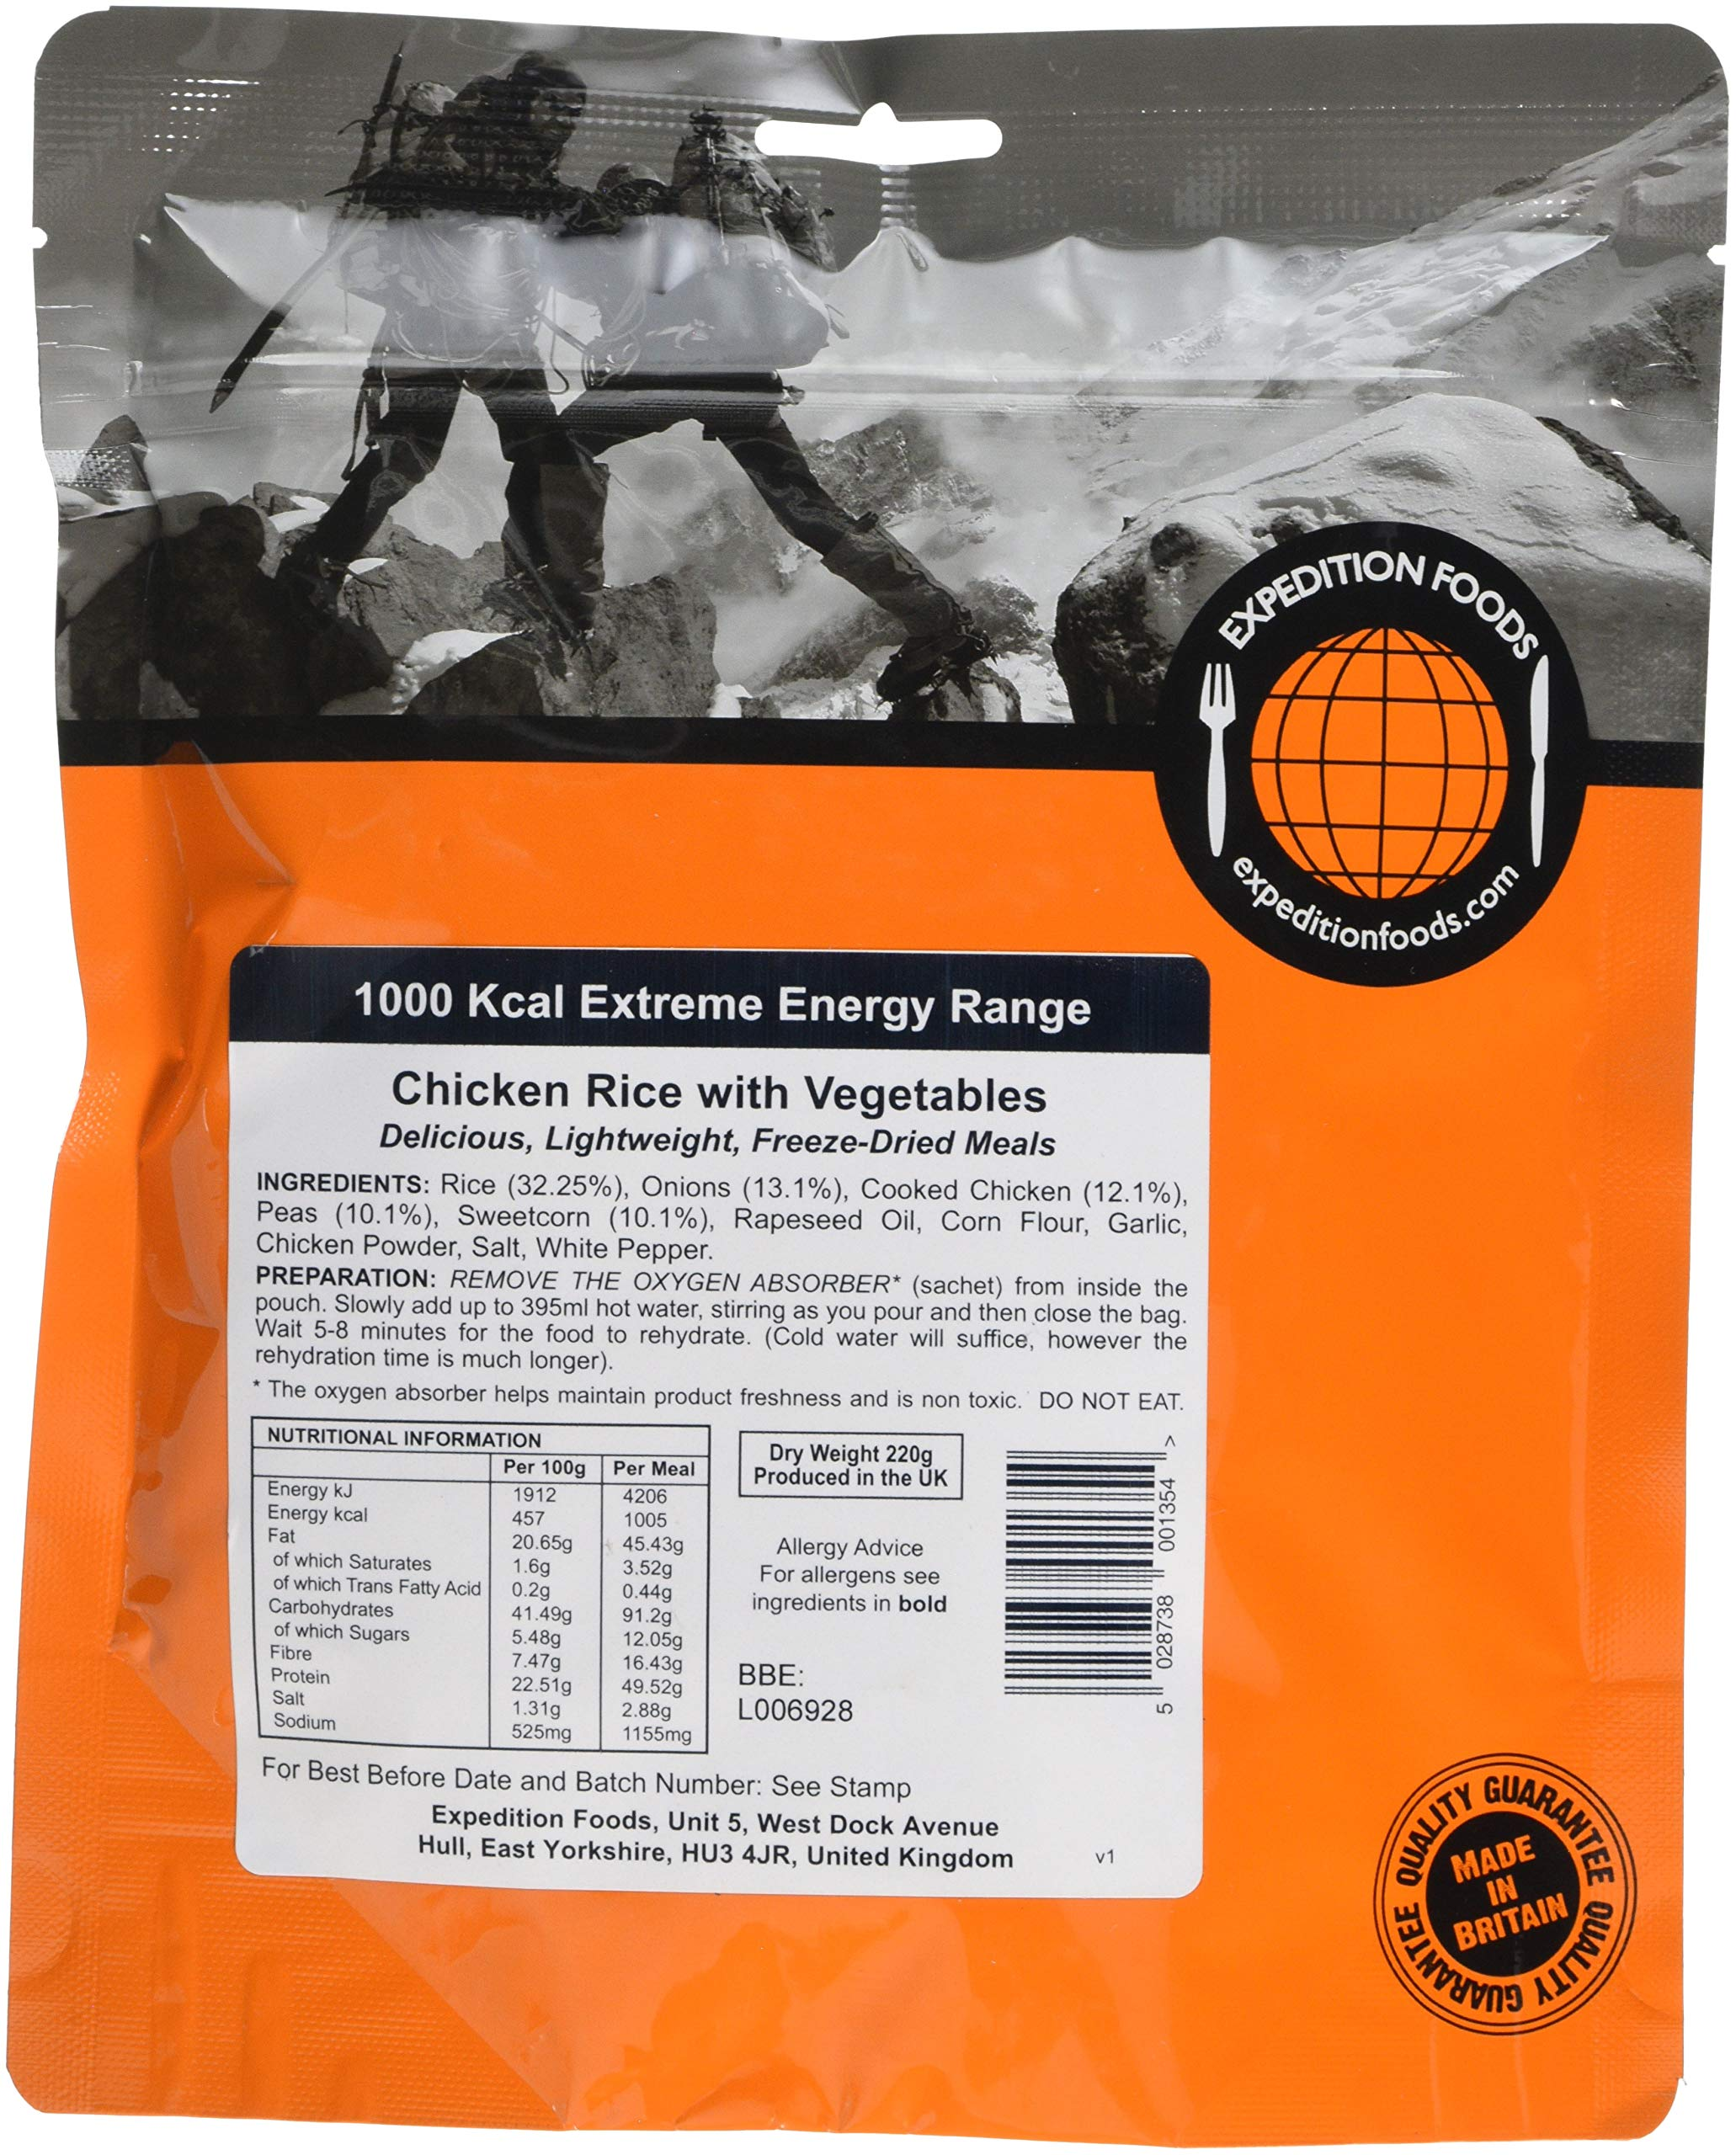 EXPEDITION FOODS expeditionfoods.com Chicken Rice Vegetable 1000kcal